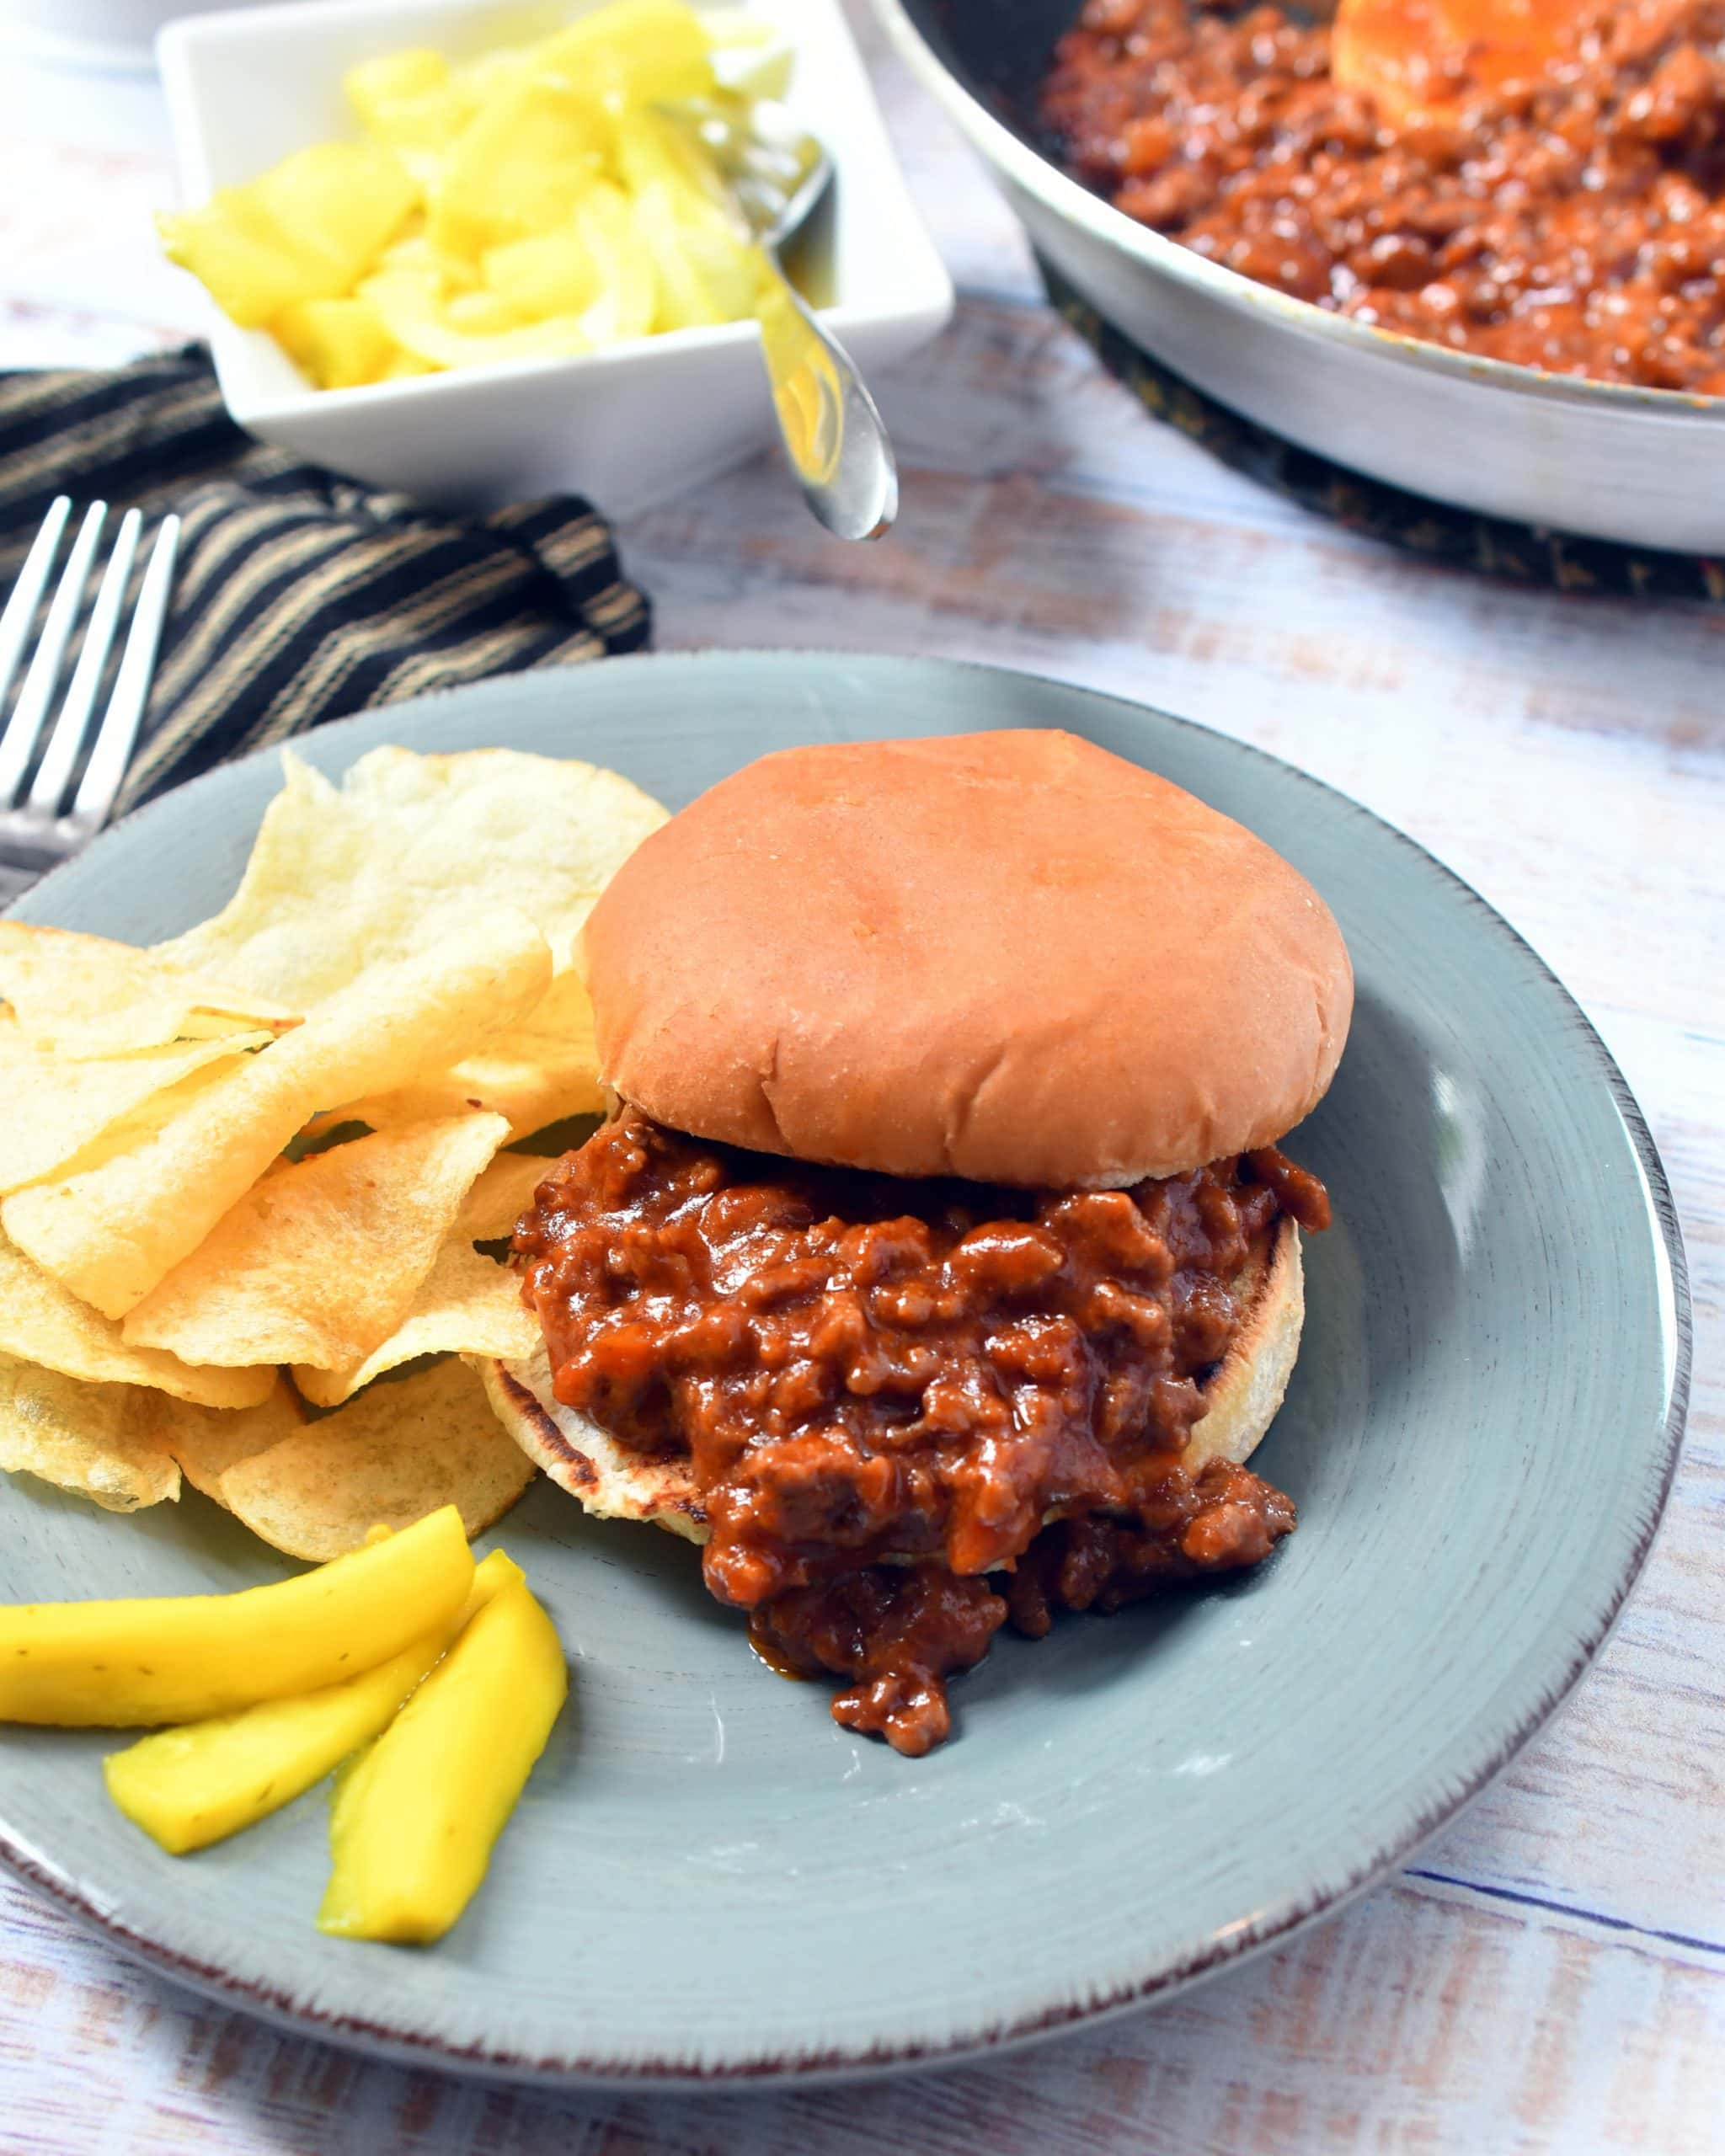 Sloppy Joe sandwich on a teal plate with a side of potato chips, pickles